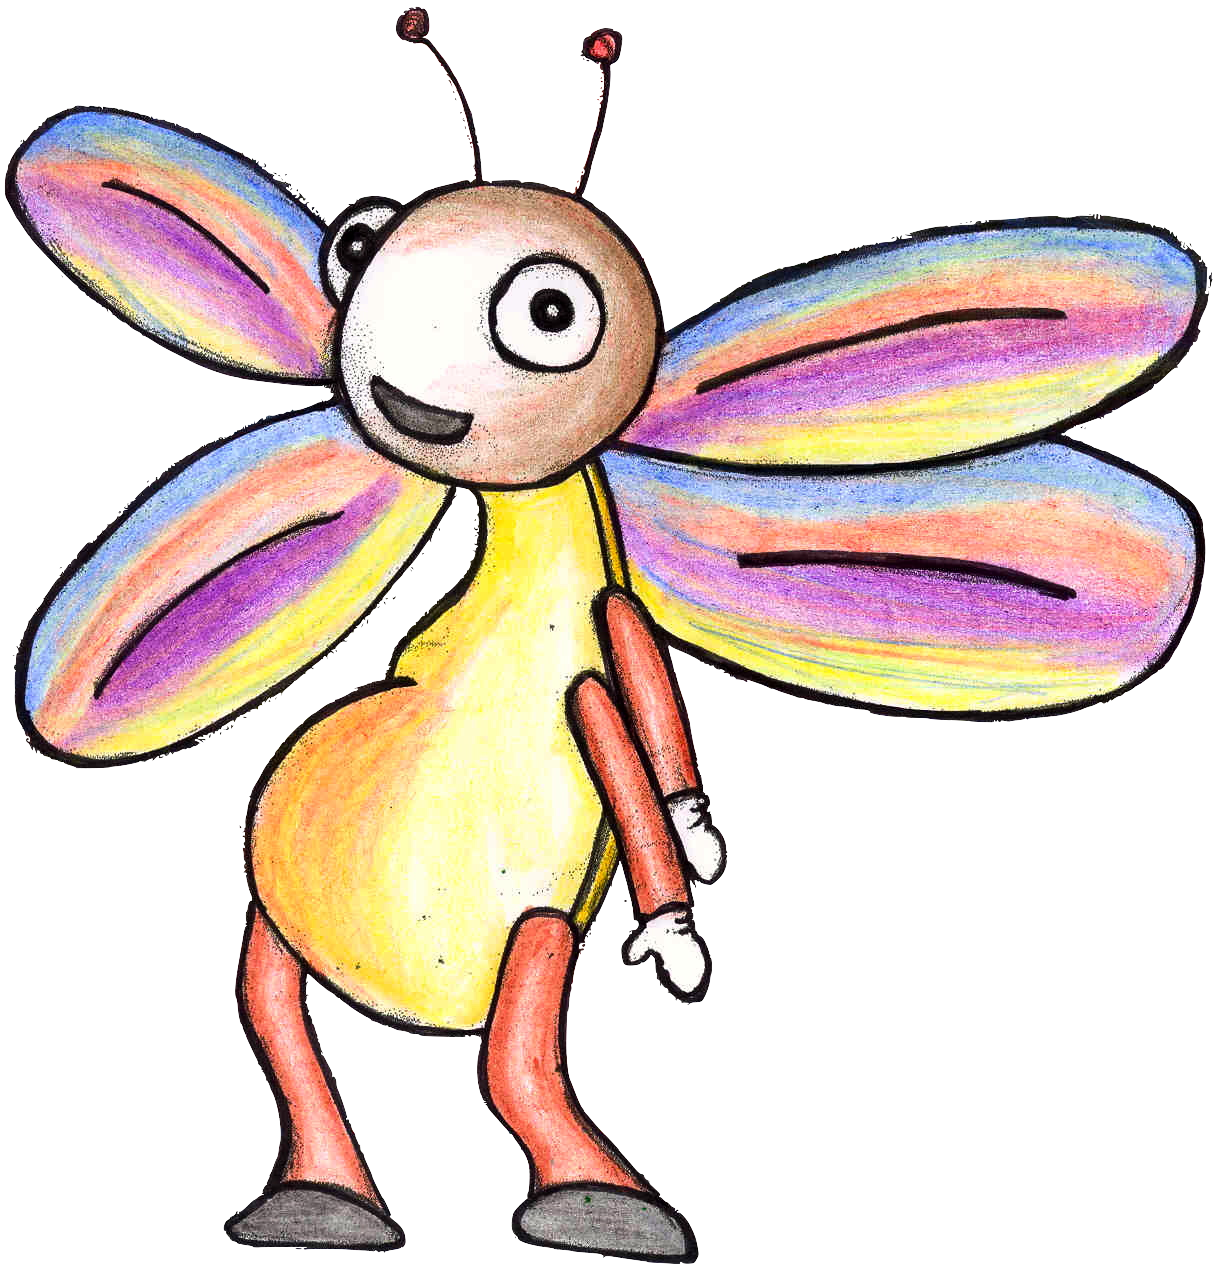 Firefly clipart kid. Freddie from carnival zoo